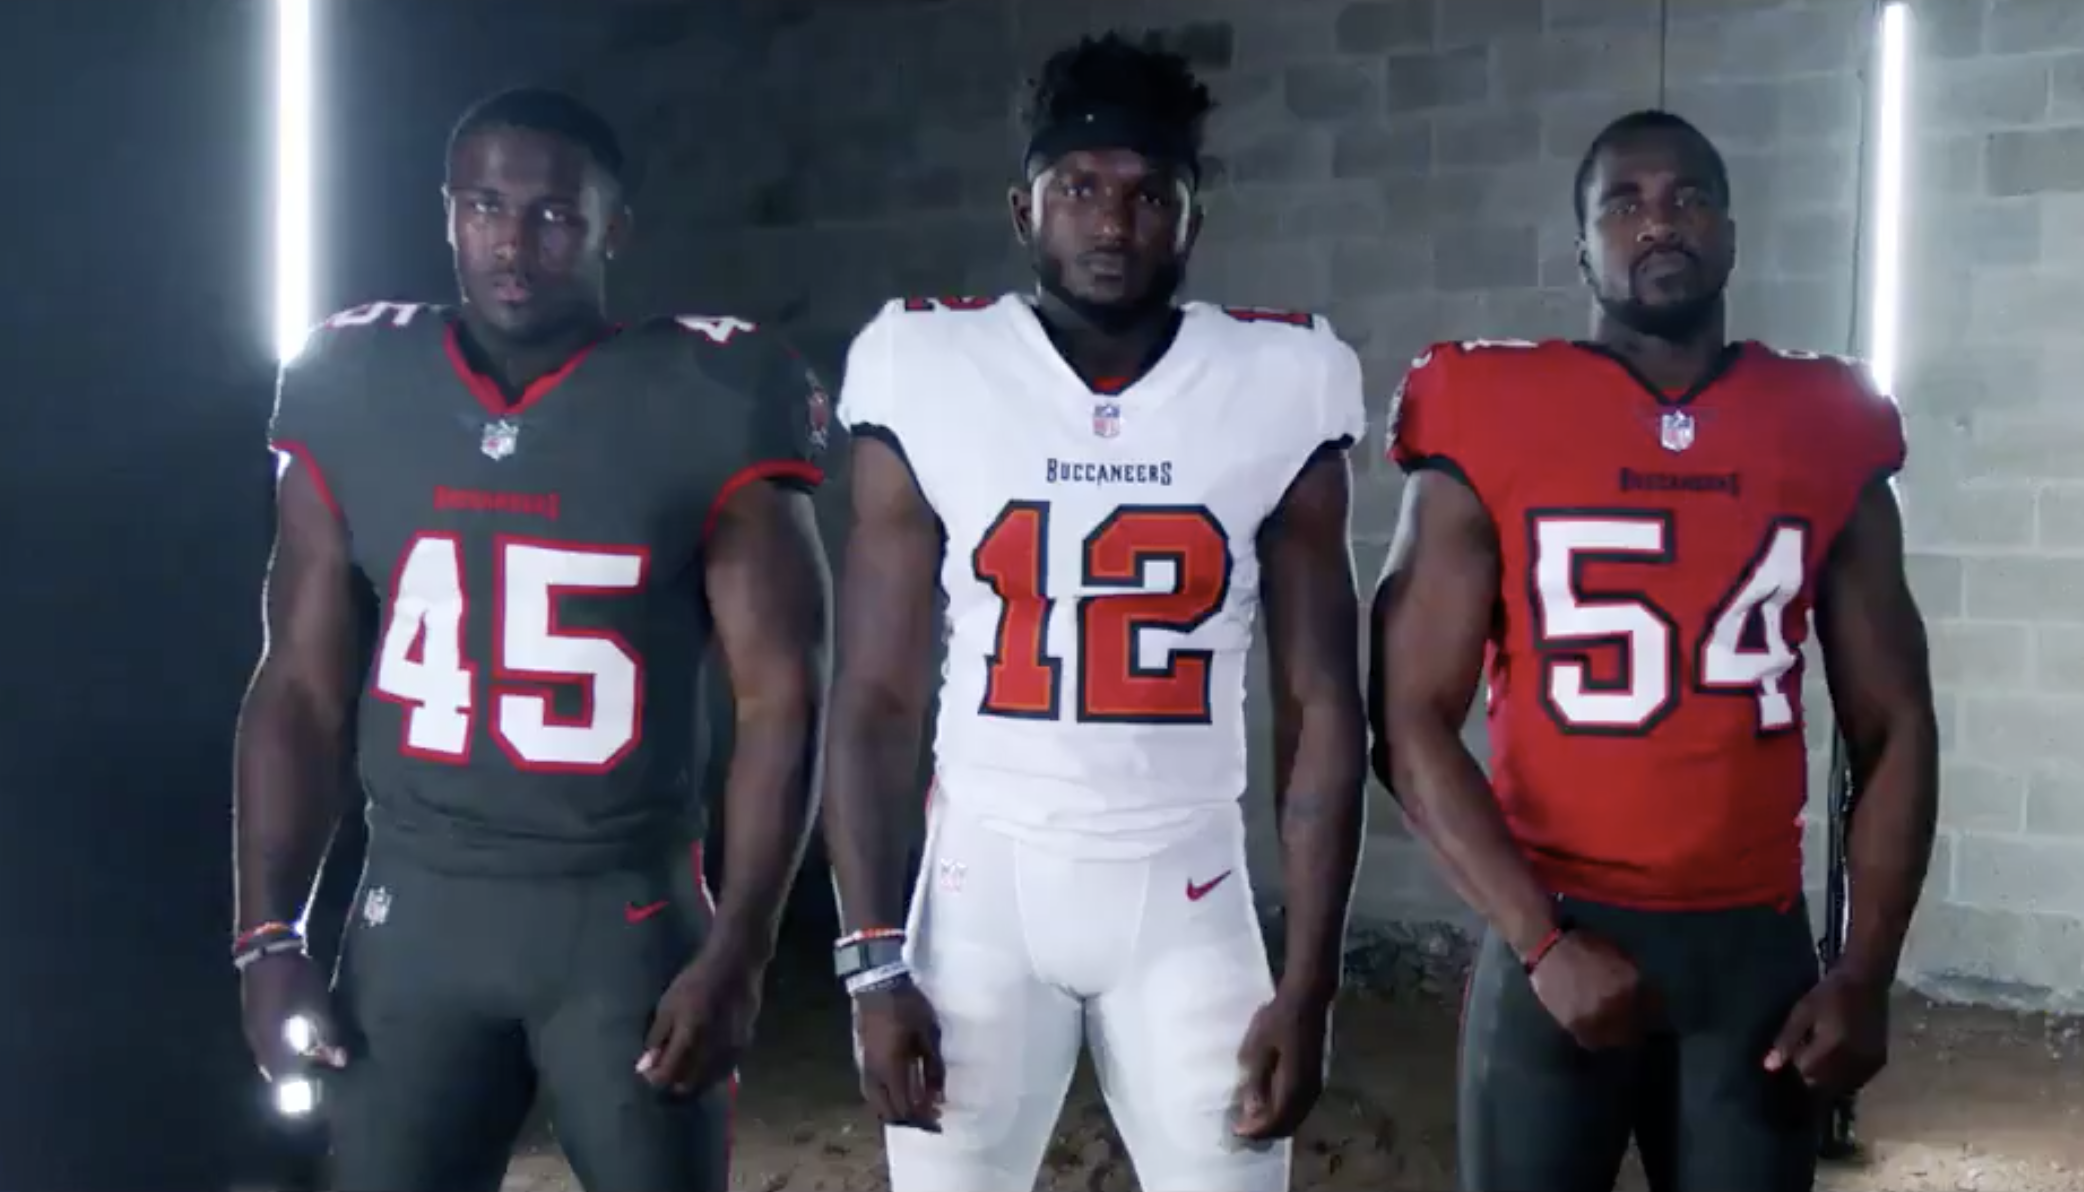 buccaneers unveil brand new uniforms what tom brady will wear yay or nay tampa bay buccaneers unveil new uniforms so you can buy that tom brady no 12 now